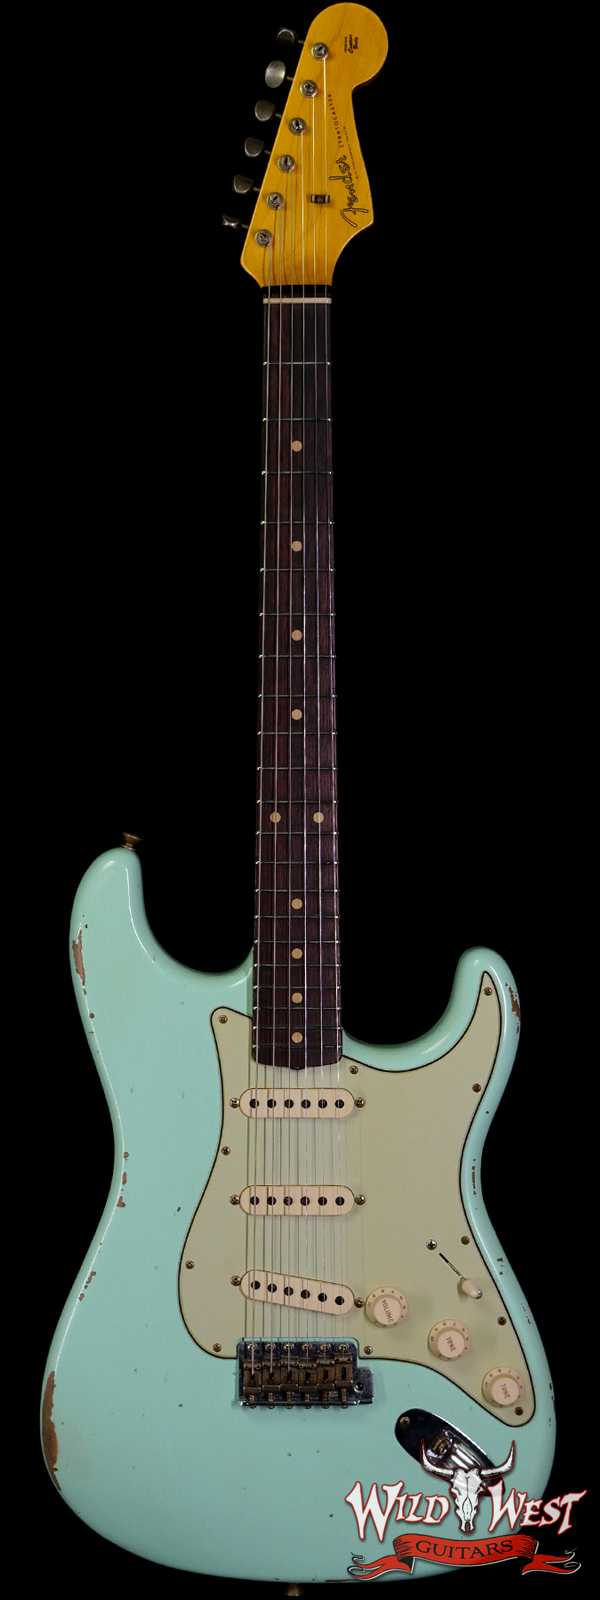 Fender Custom Shop 1961 Stratocaster Relic AAA Rosewood Slab Board with Maple Neck Surf Green